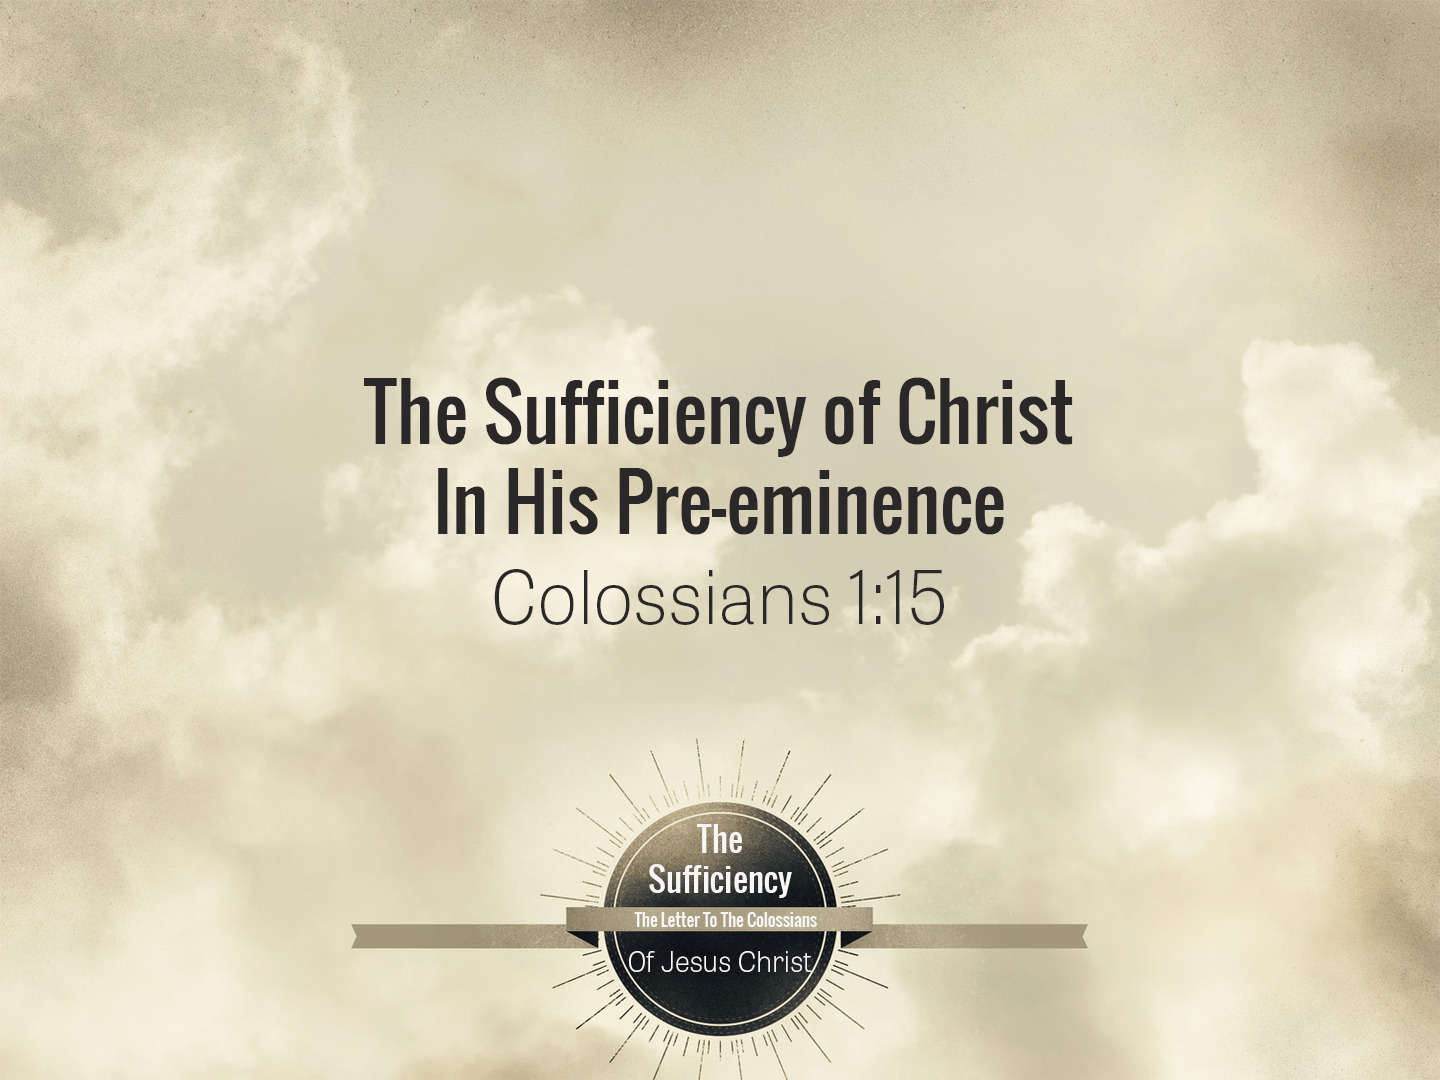 Colossians 1v15 The Sufficiency of Christ In His Pre-eminence